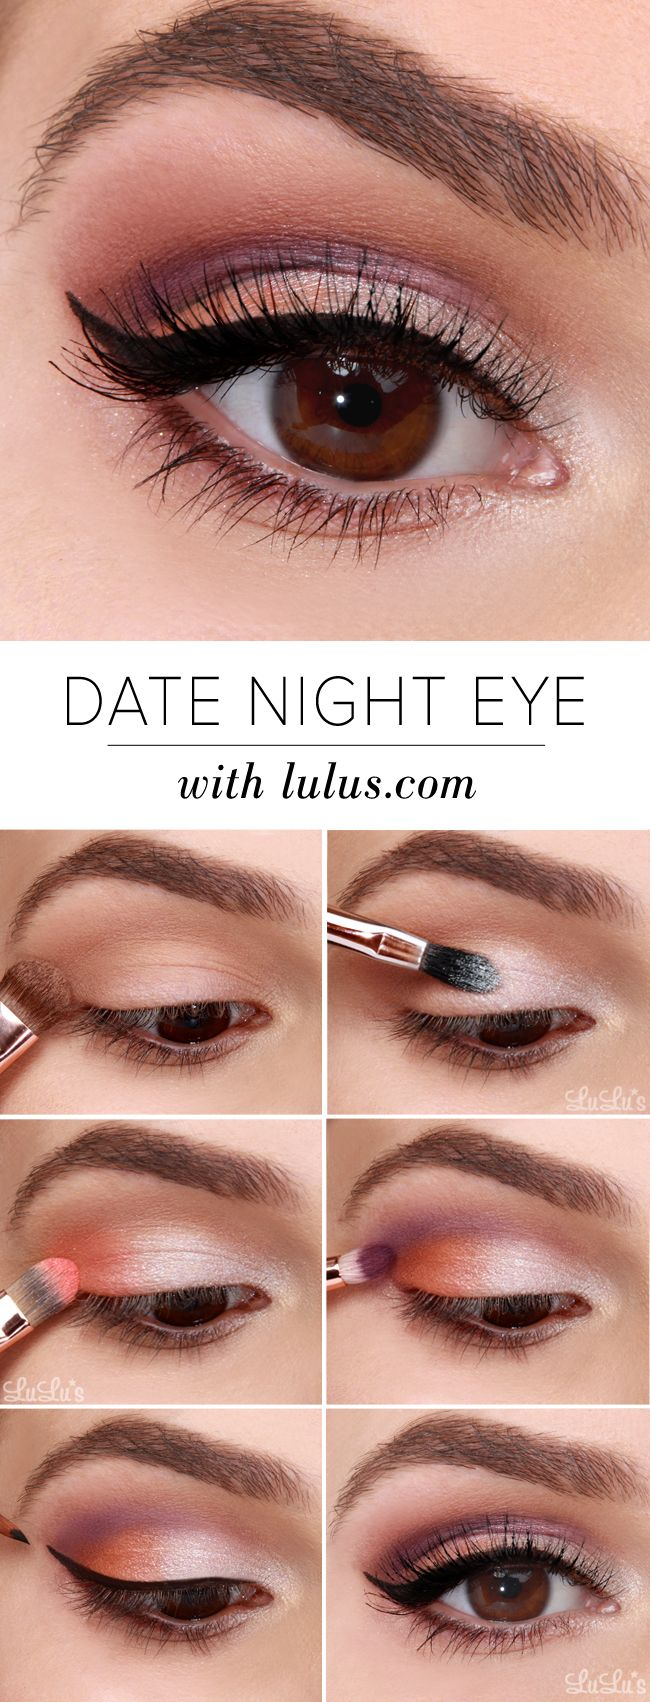 Eyeshadow Tutorial Videos: 12 Step-by-Step Makeup Tutorials For A Night Out